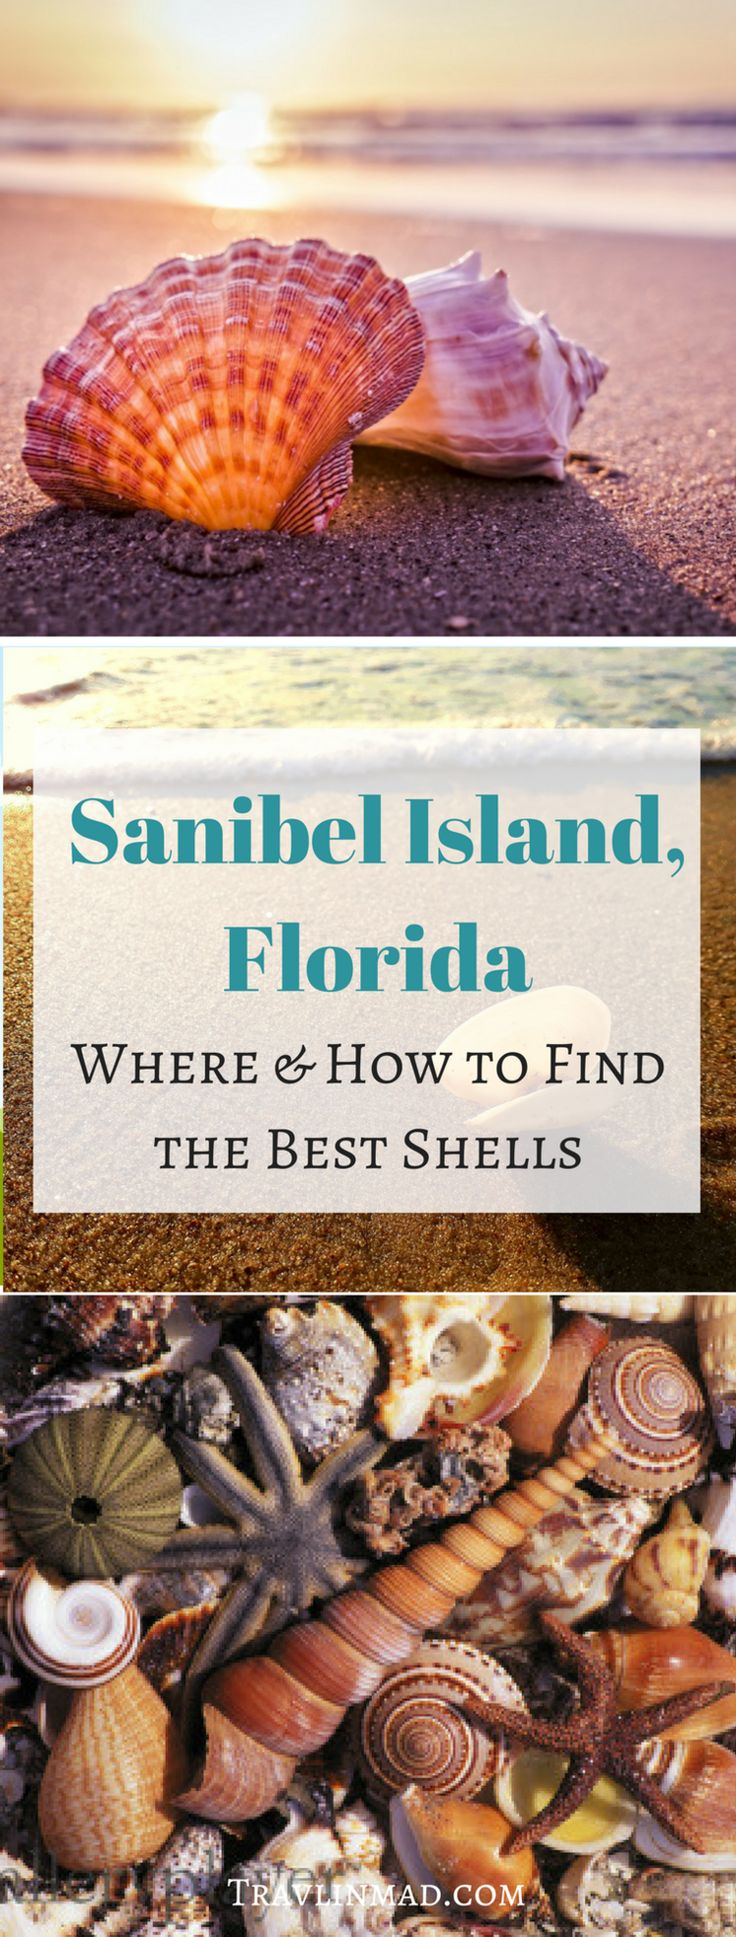 USA - Sanibel Island beaches are teeming with gorgeous seashells, but where can you find the best beaches on Sanibel for shelling? Here's your ultimate guide to Sanibel shelling:the how, when, and where to find the best shells. | Best Shelling Beaches, Sanibel shells, Sanibel Island, Captiva Island, Florida, #shelling #Sanibelshelling #Floridashelling